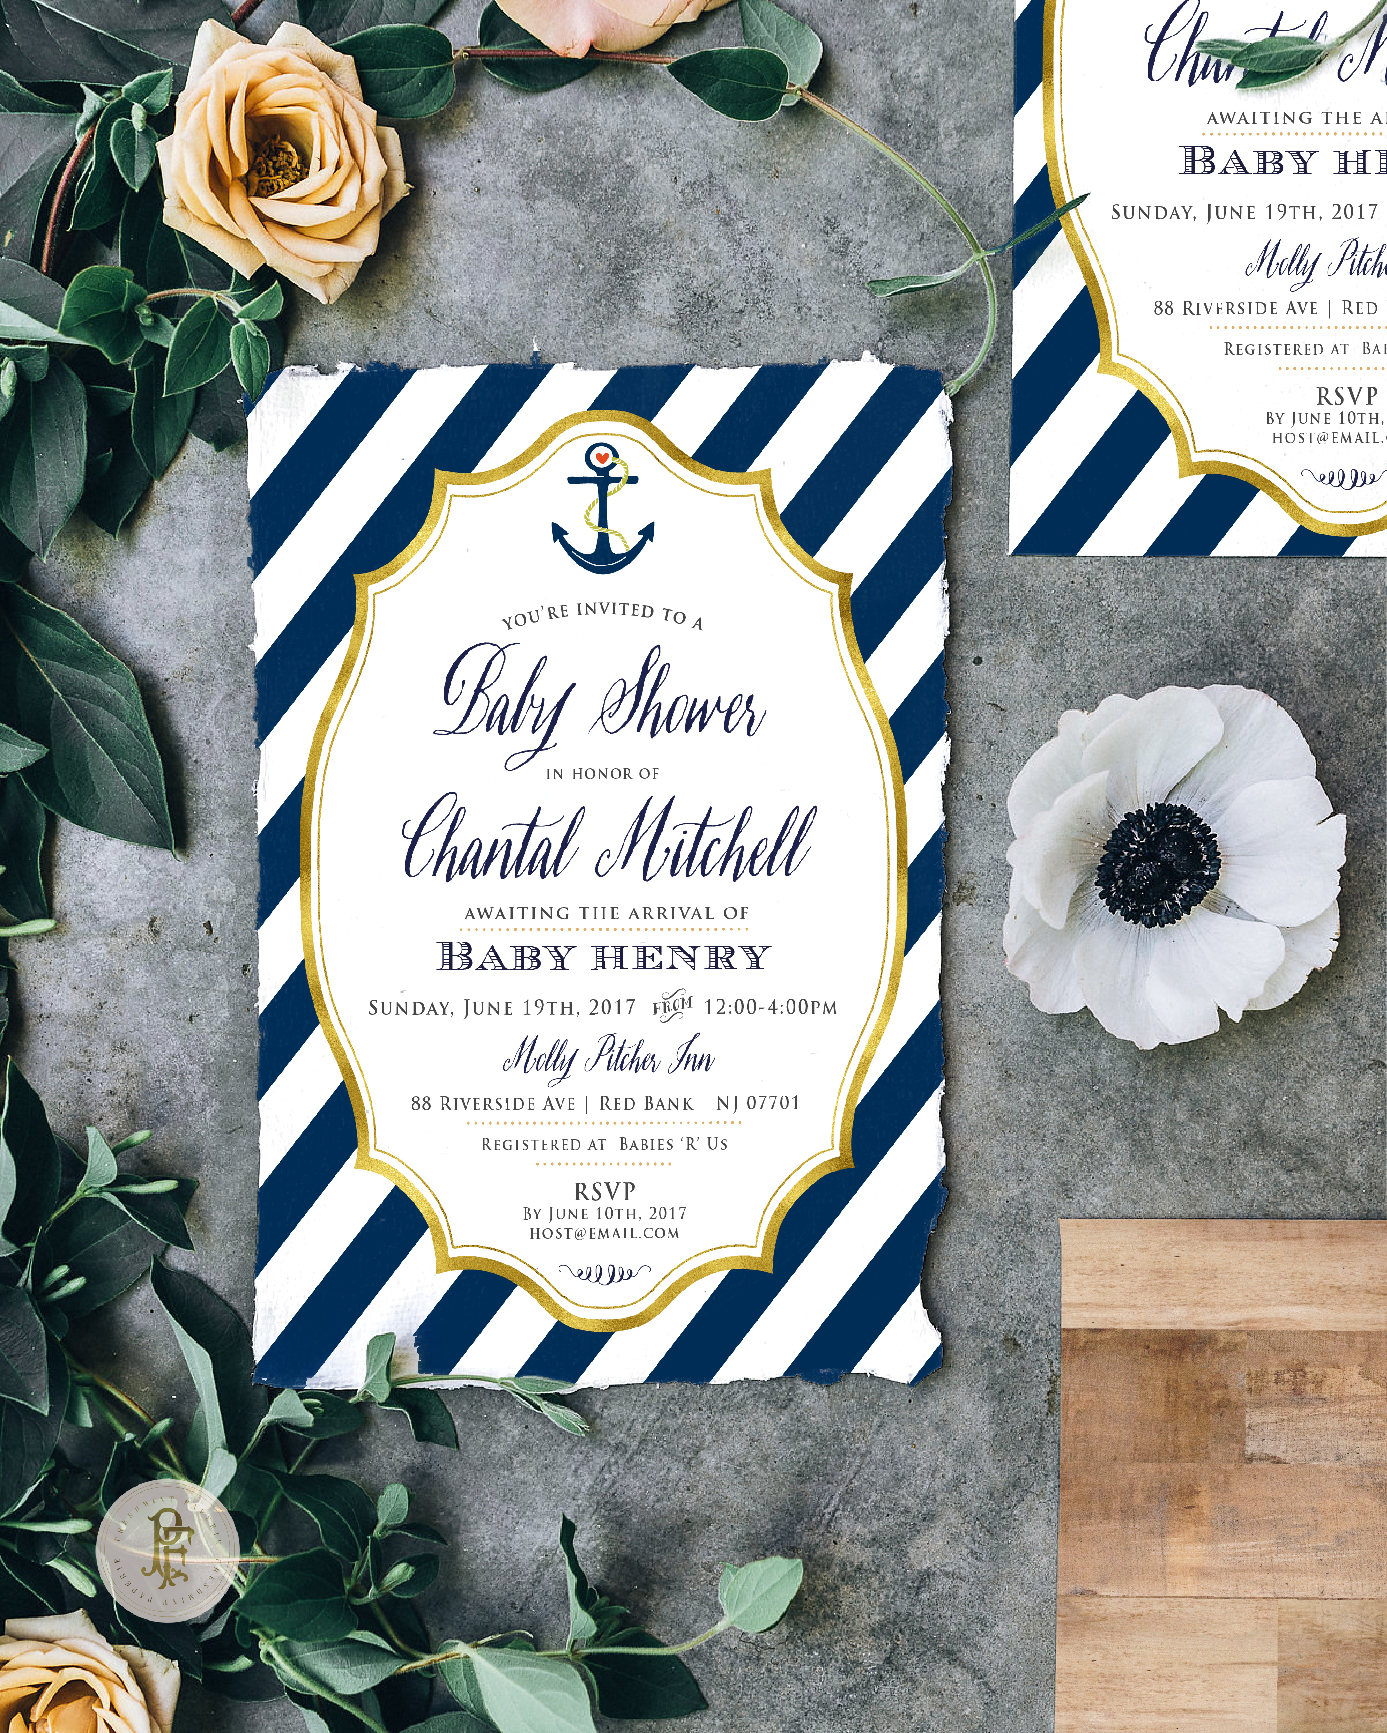 Nautical Invitation   Nautical Baby Shower Invitation   Anchor Invitation   Baby  Shower Invitation   Ahoy Its A Boy!